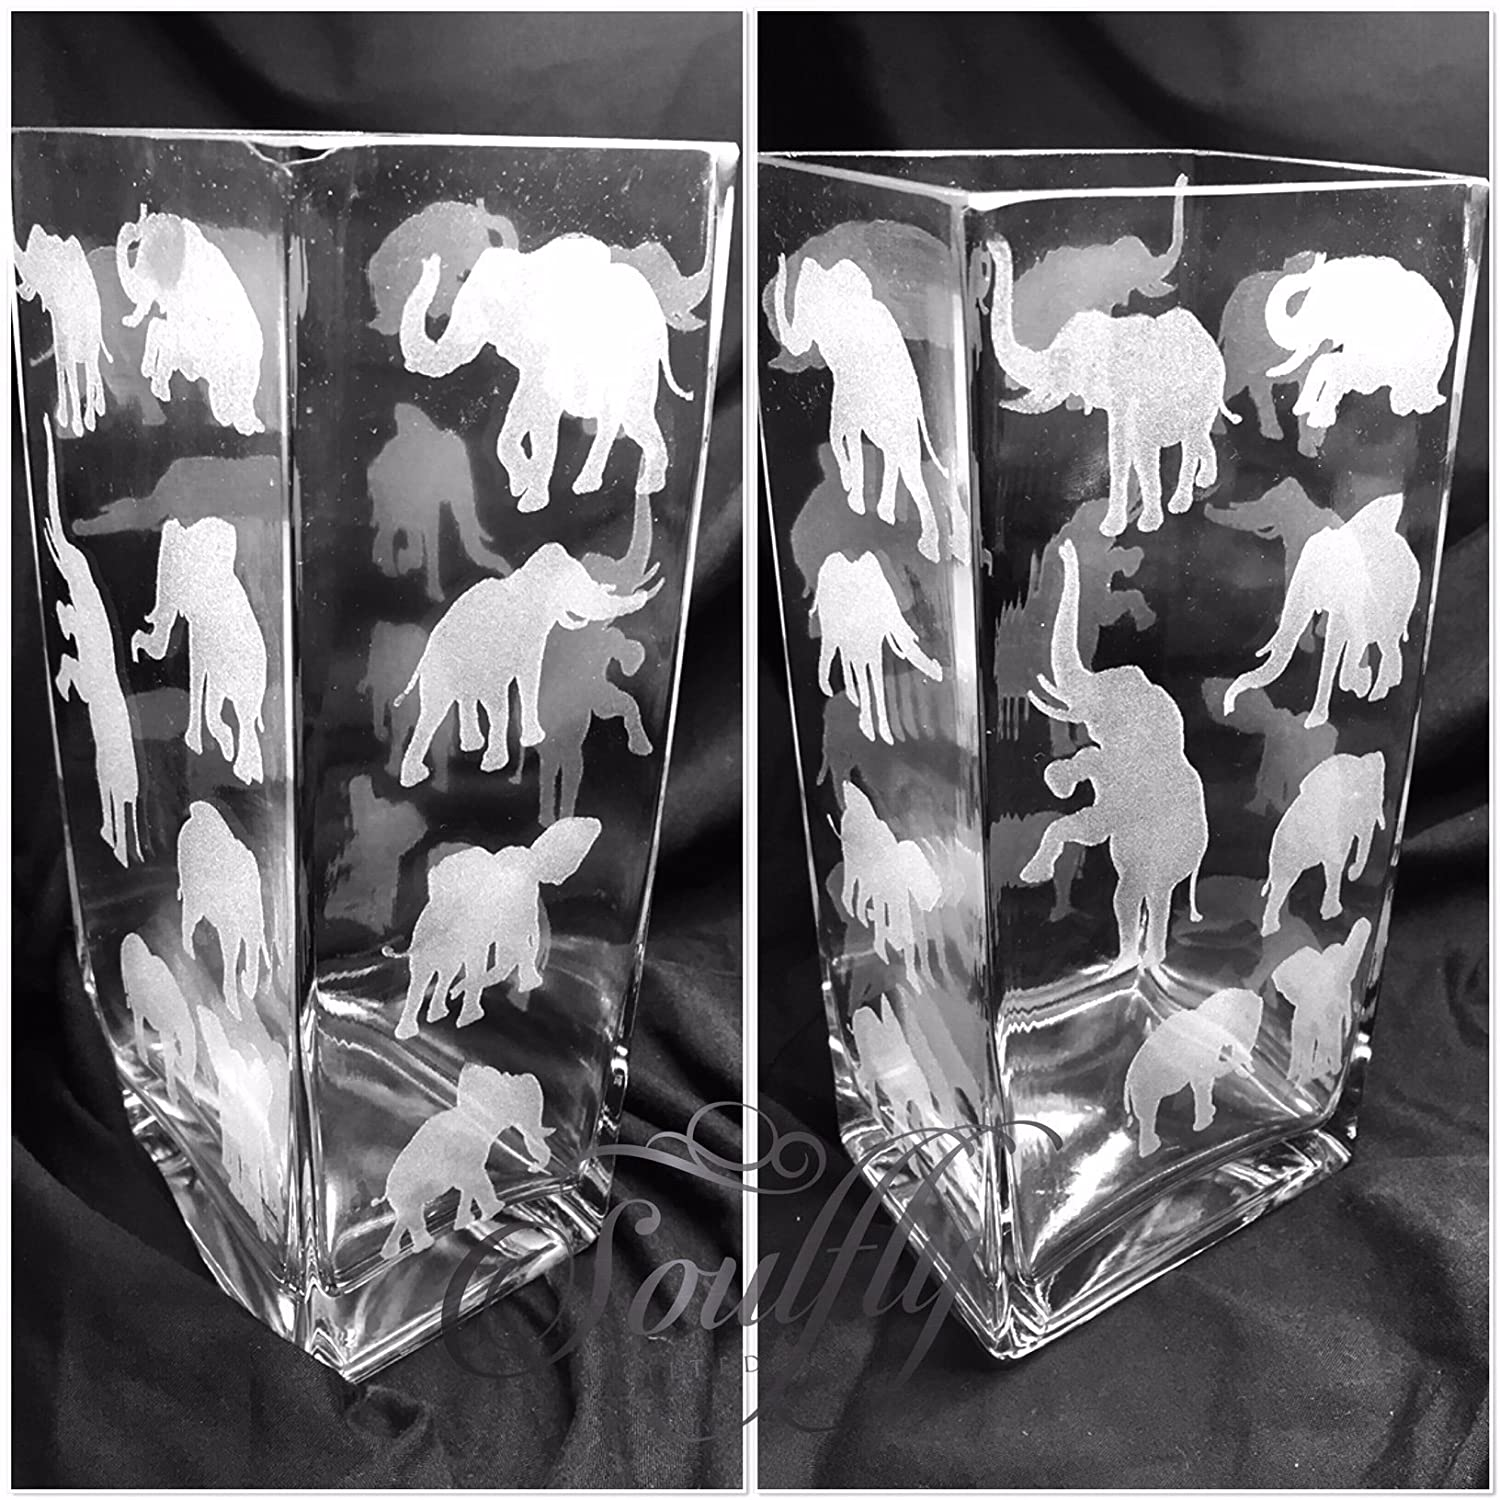 MOTHER DAY ELEPHANT SILHOUETTE ENGRAVED GLASS TANK VASE - PERSONALISED FREE Engraved, etched glass personalised FREE gift, wedding, birthday, mother, father, anniversary, present, Mr & Mrs, engagement, day, MEMORIAL